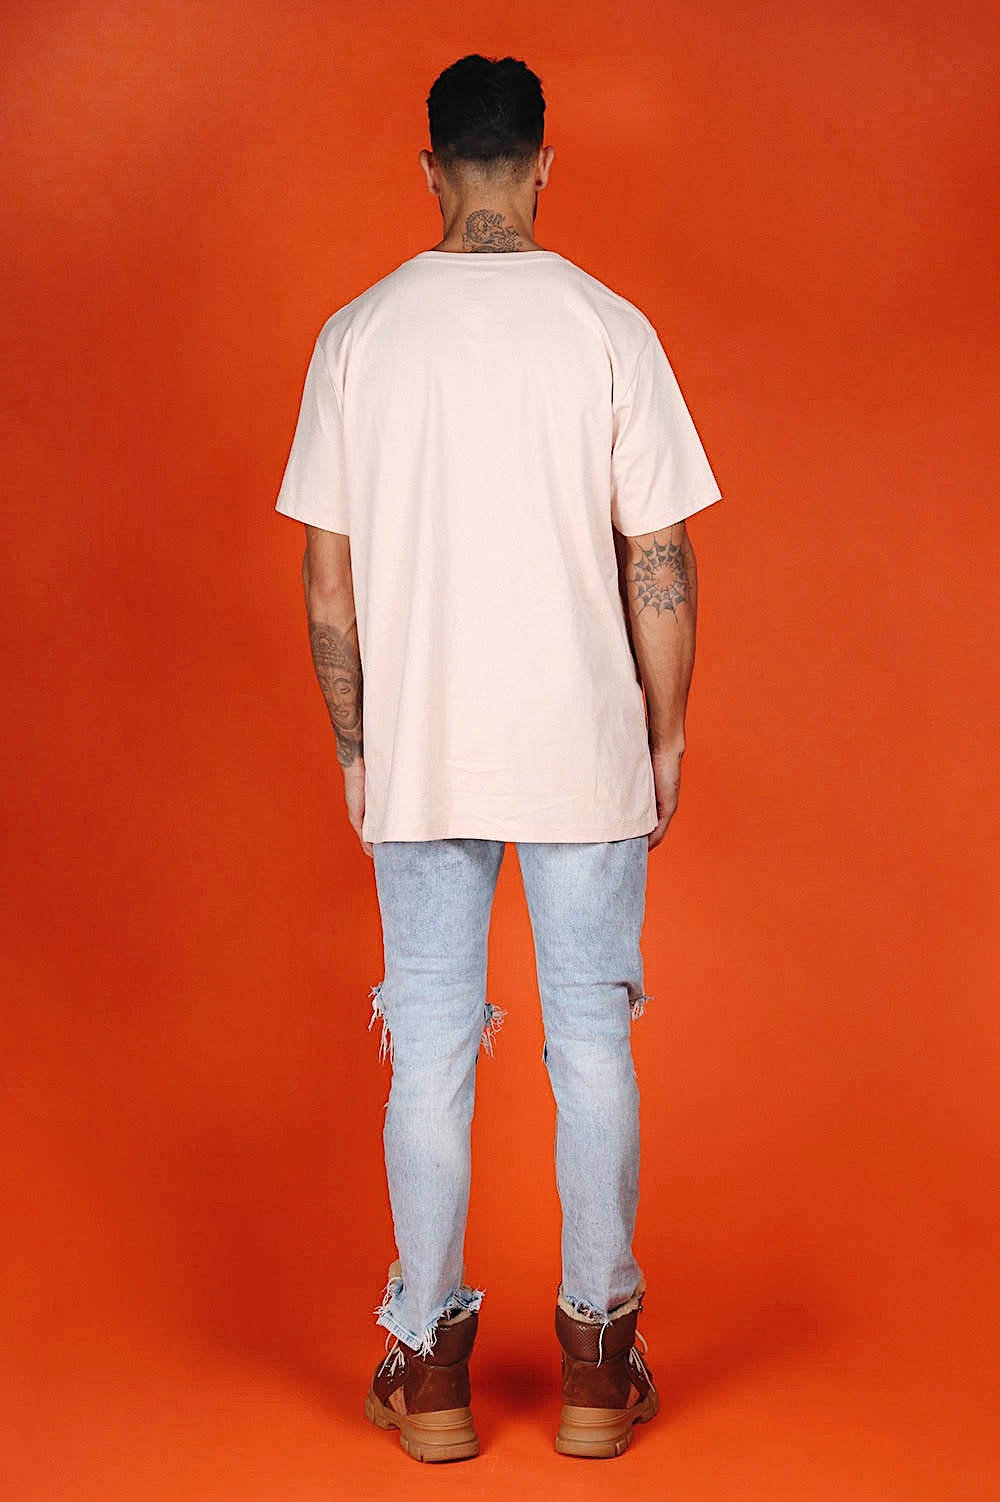 ARCTIC T SHIRT - PINK/ PEACH MEN'S